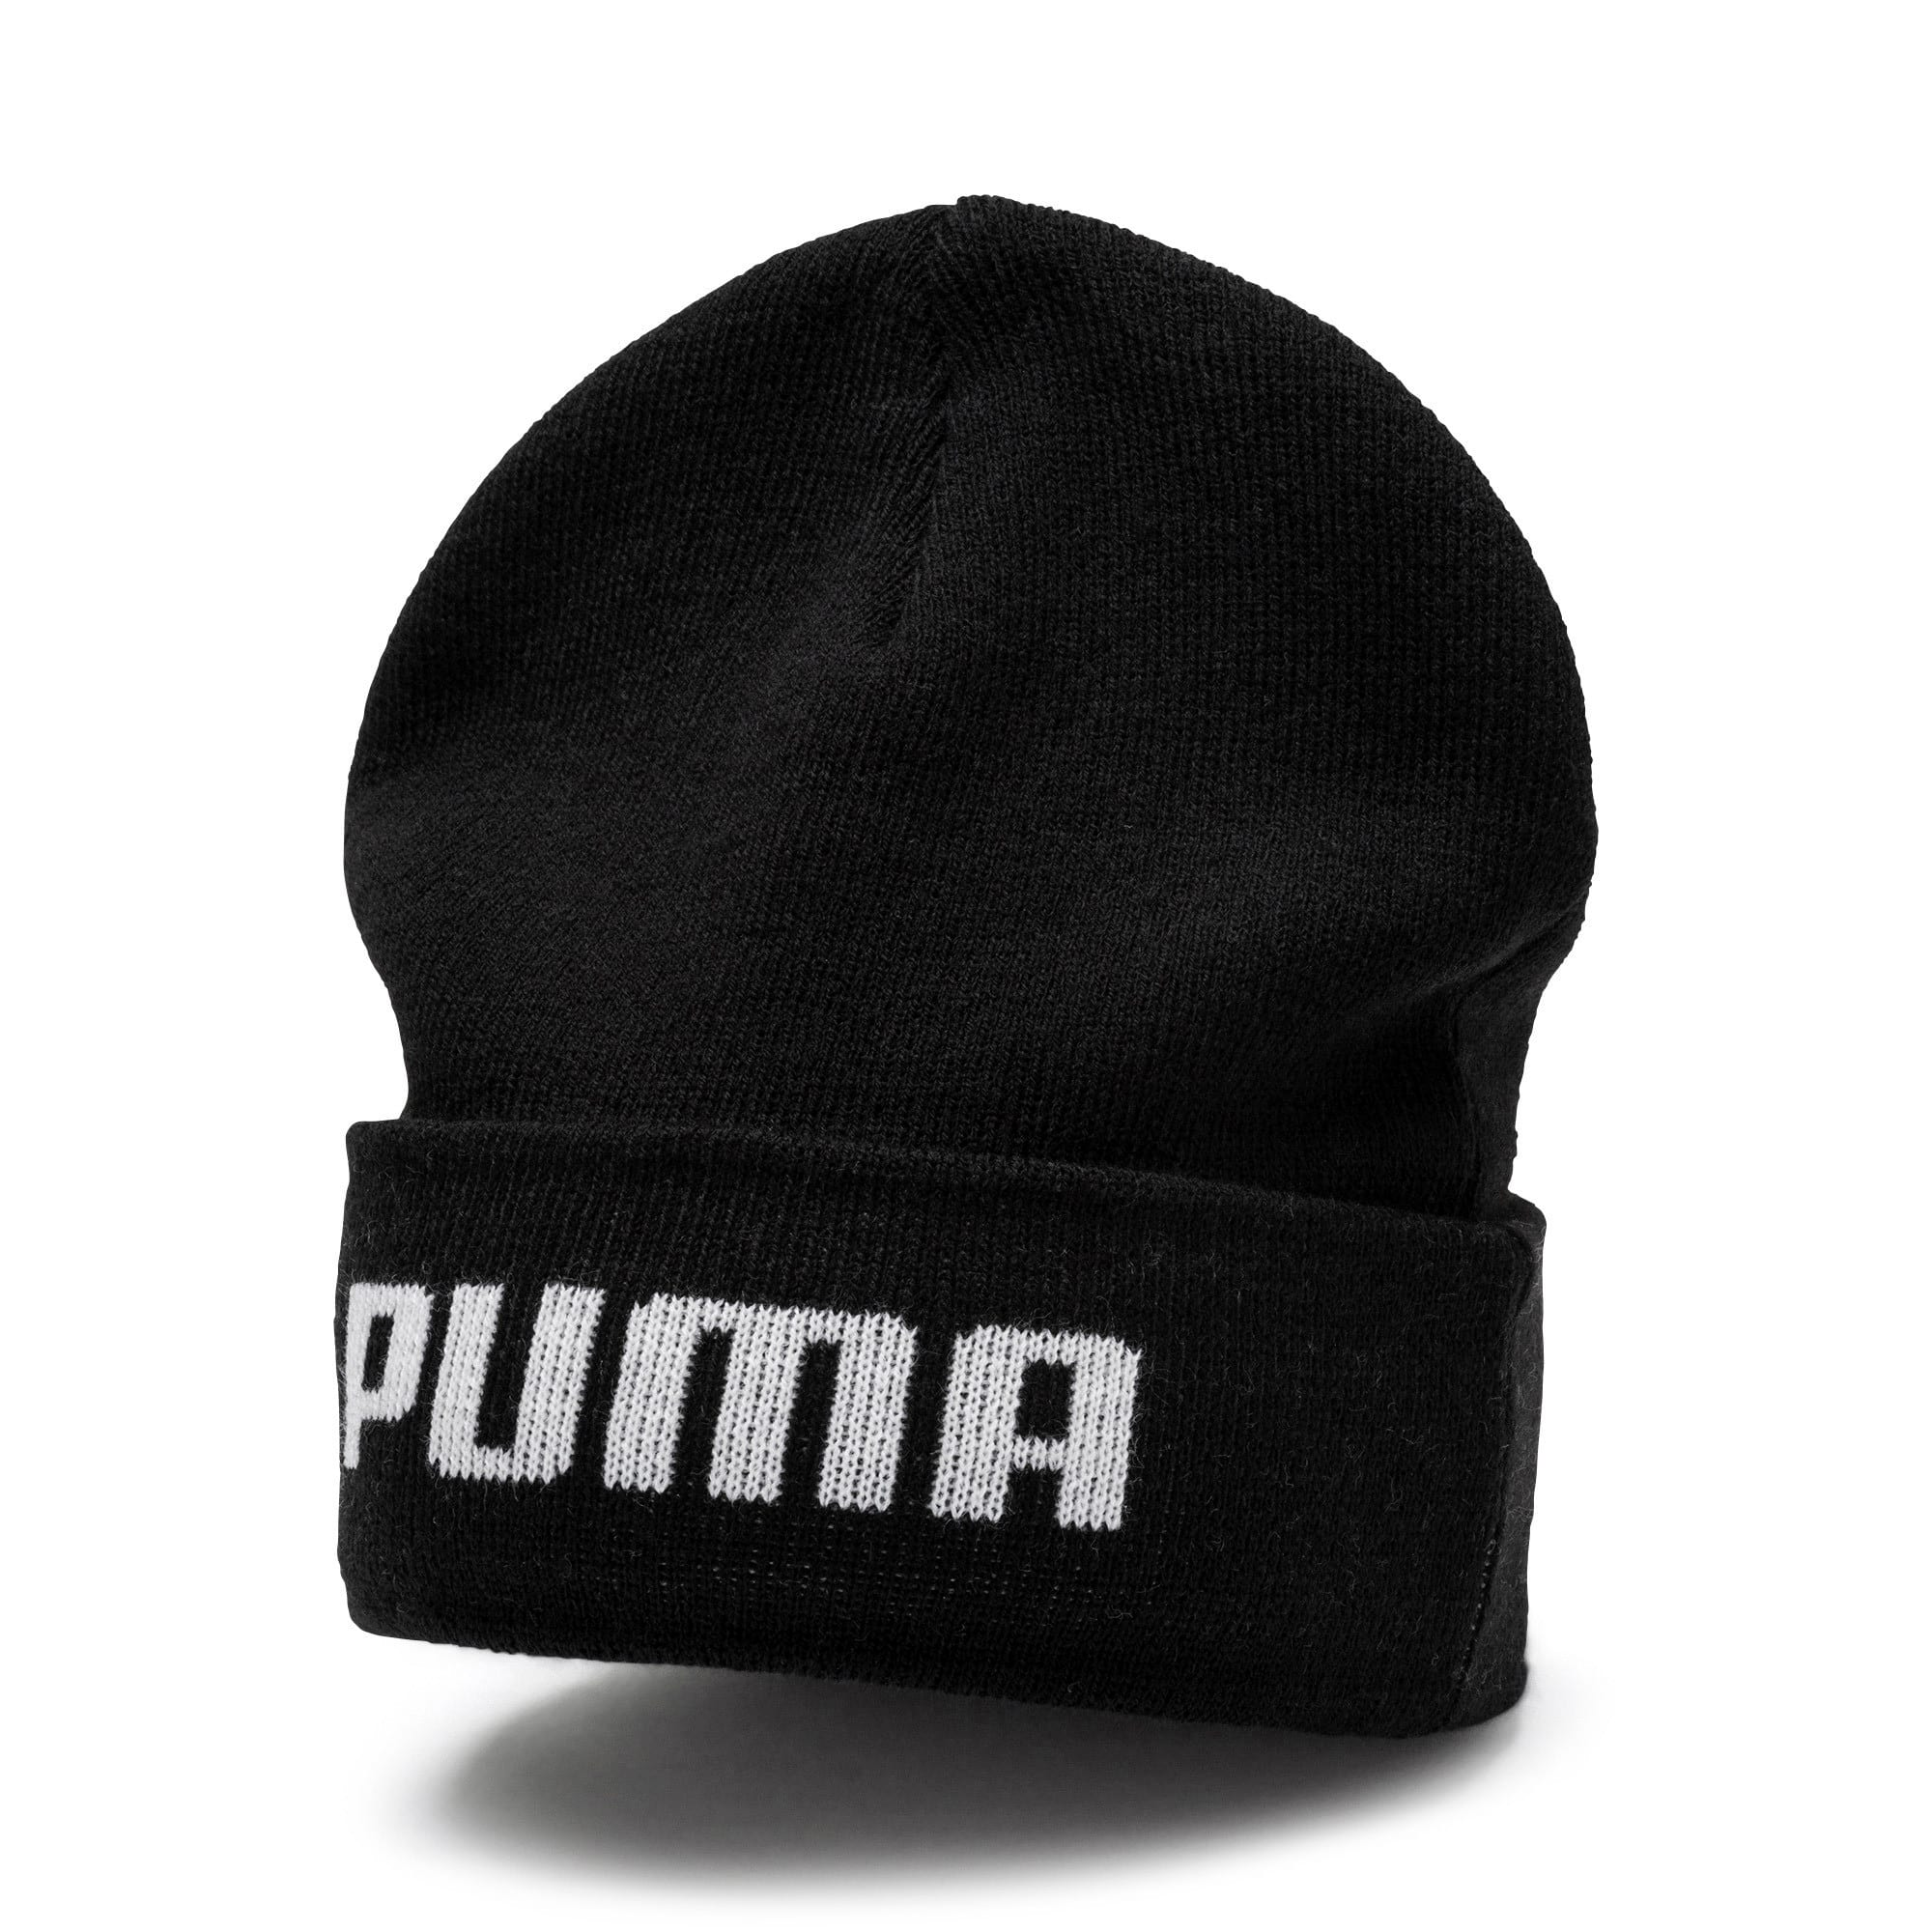 Thumbnail 1 of Mid Fit Beanie, Puma Black, medium